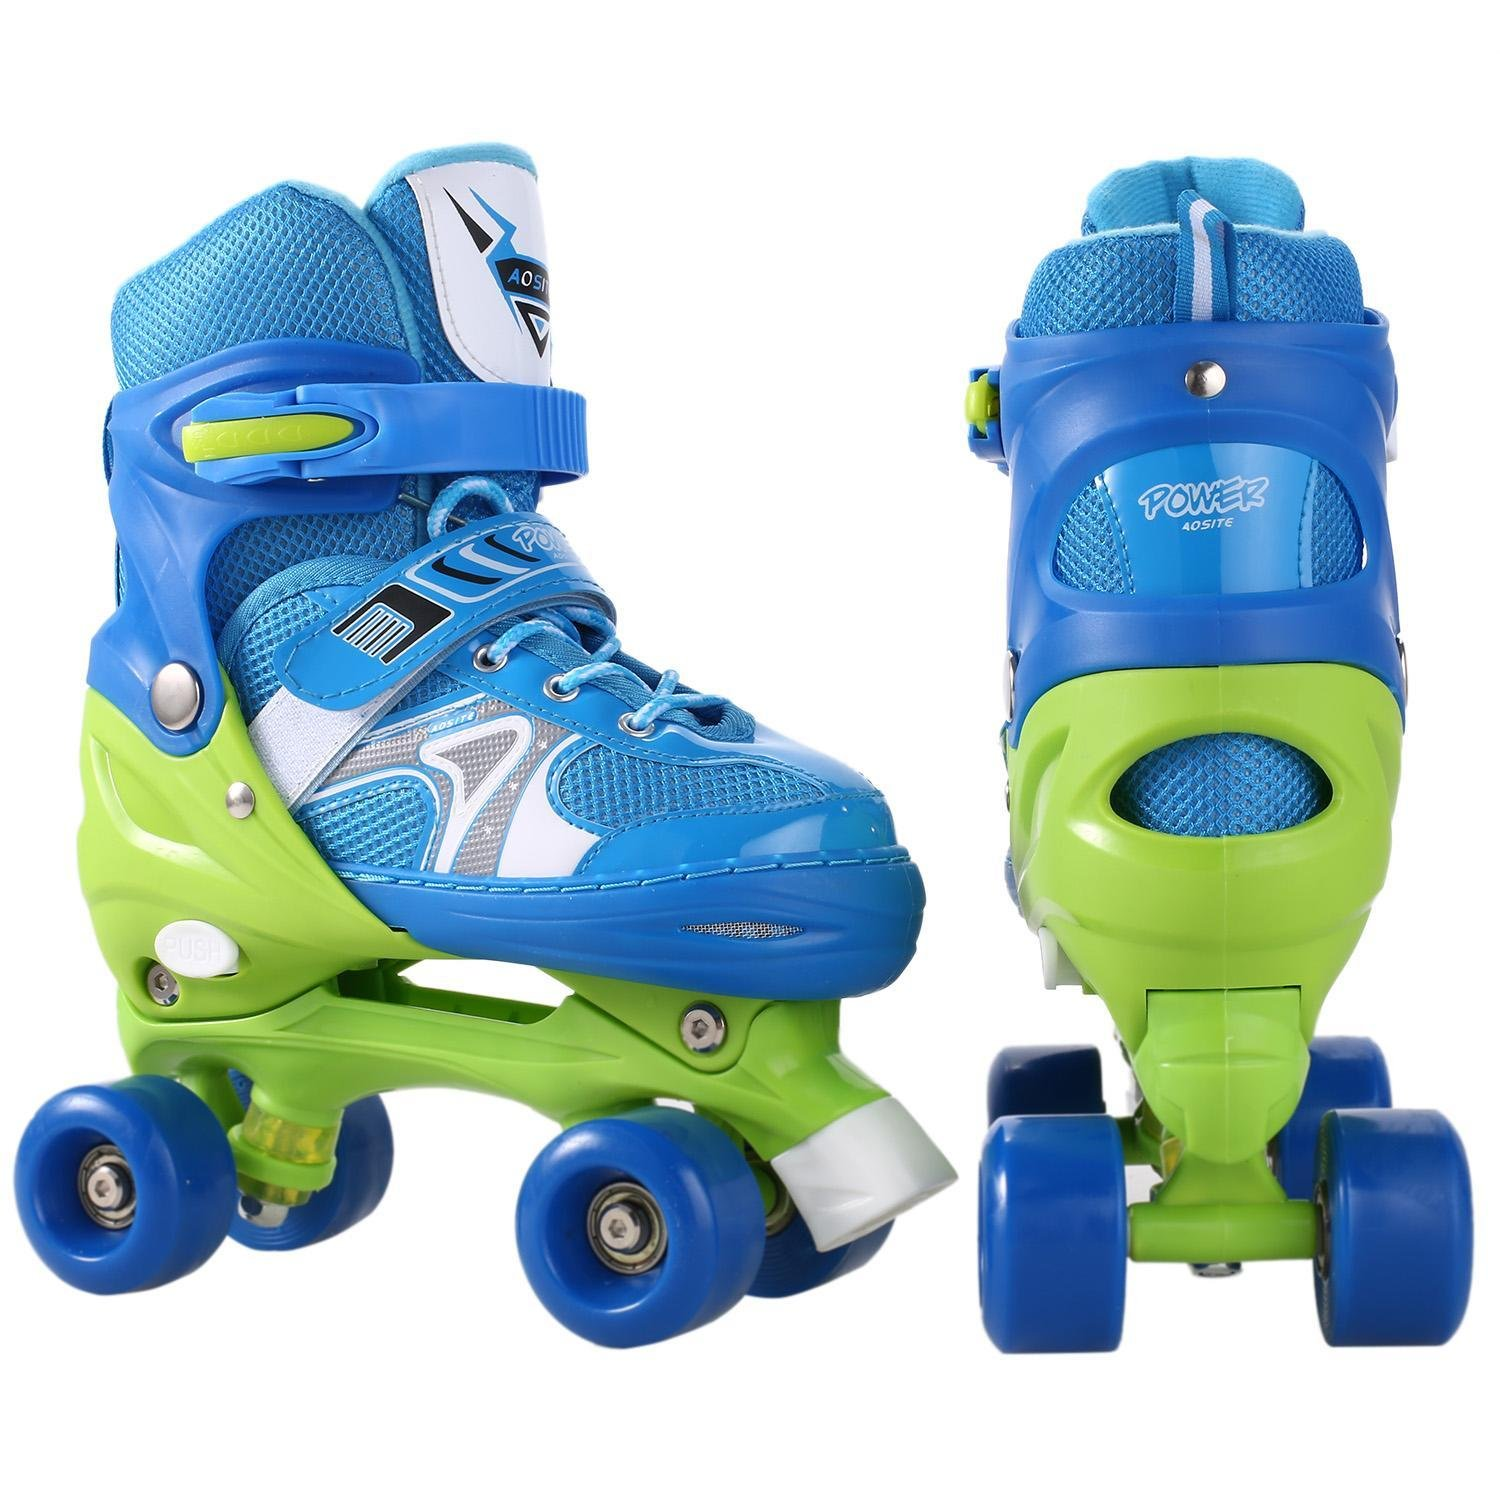 Kaluo Adjustable Double Row Skate Kids Roller Skates Rollerblades PP PVC Wheel Kid Children Indoor Outdoor(US Stock) (Blue, US 2 - 5)